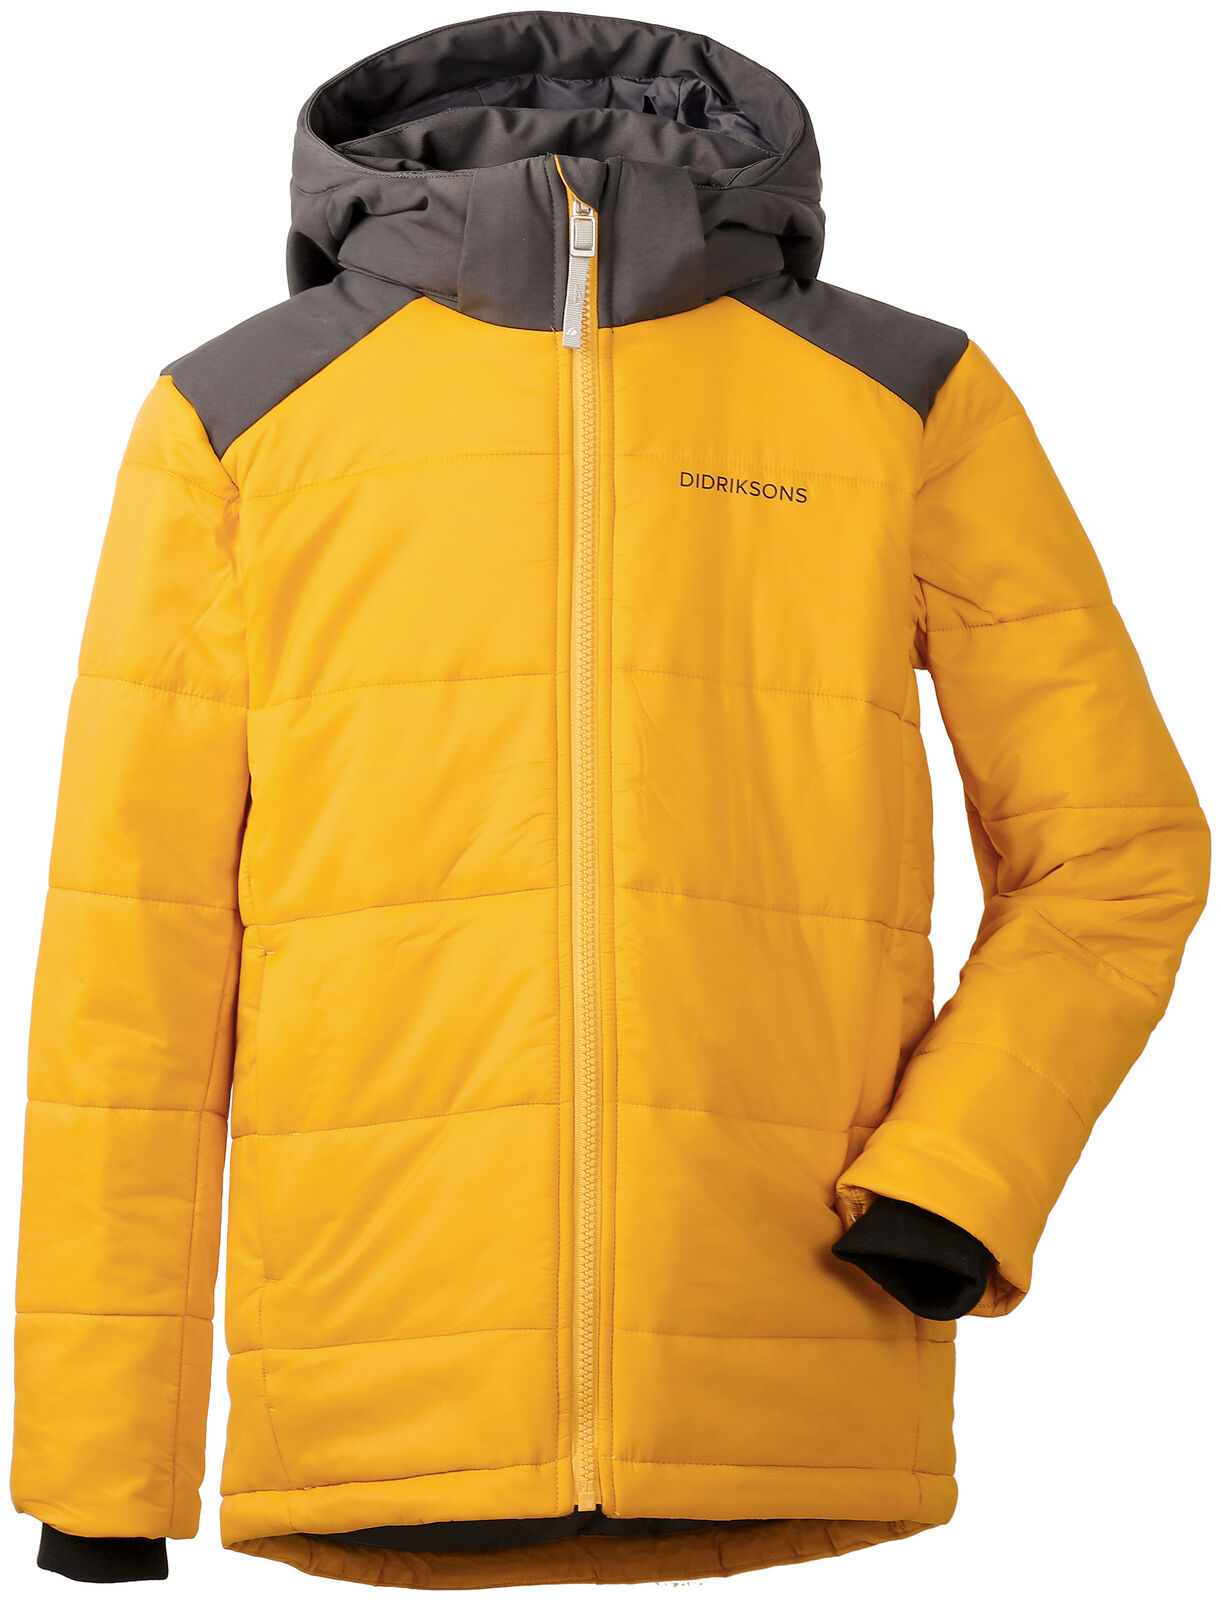 Didriksons Outdoorjacke Jacke Even Boy's Jacket  gelb winddicht wasserabweisend